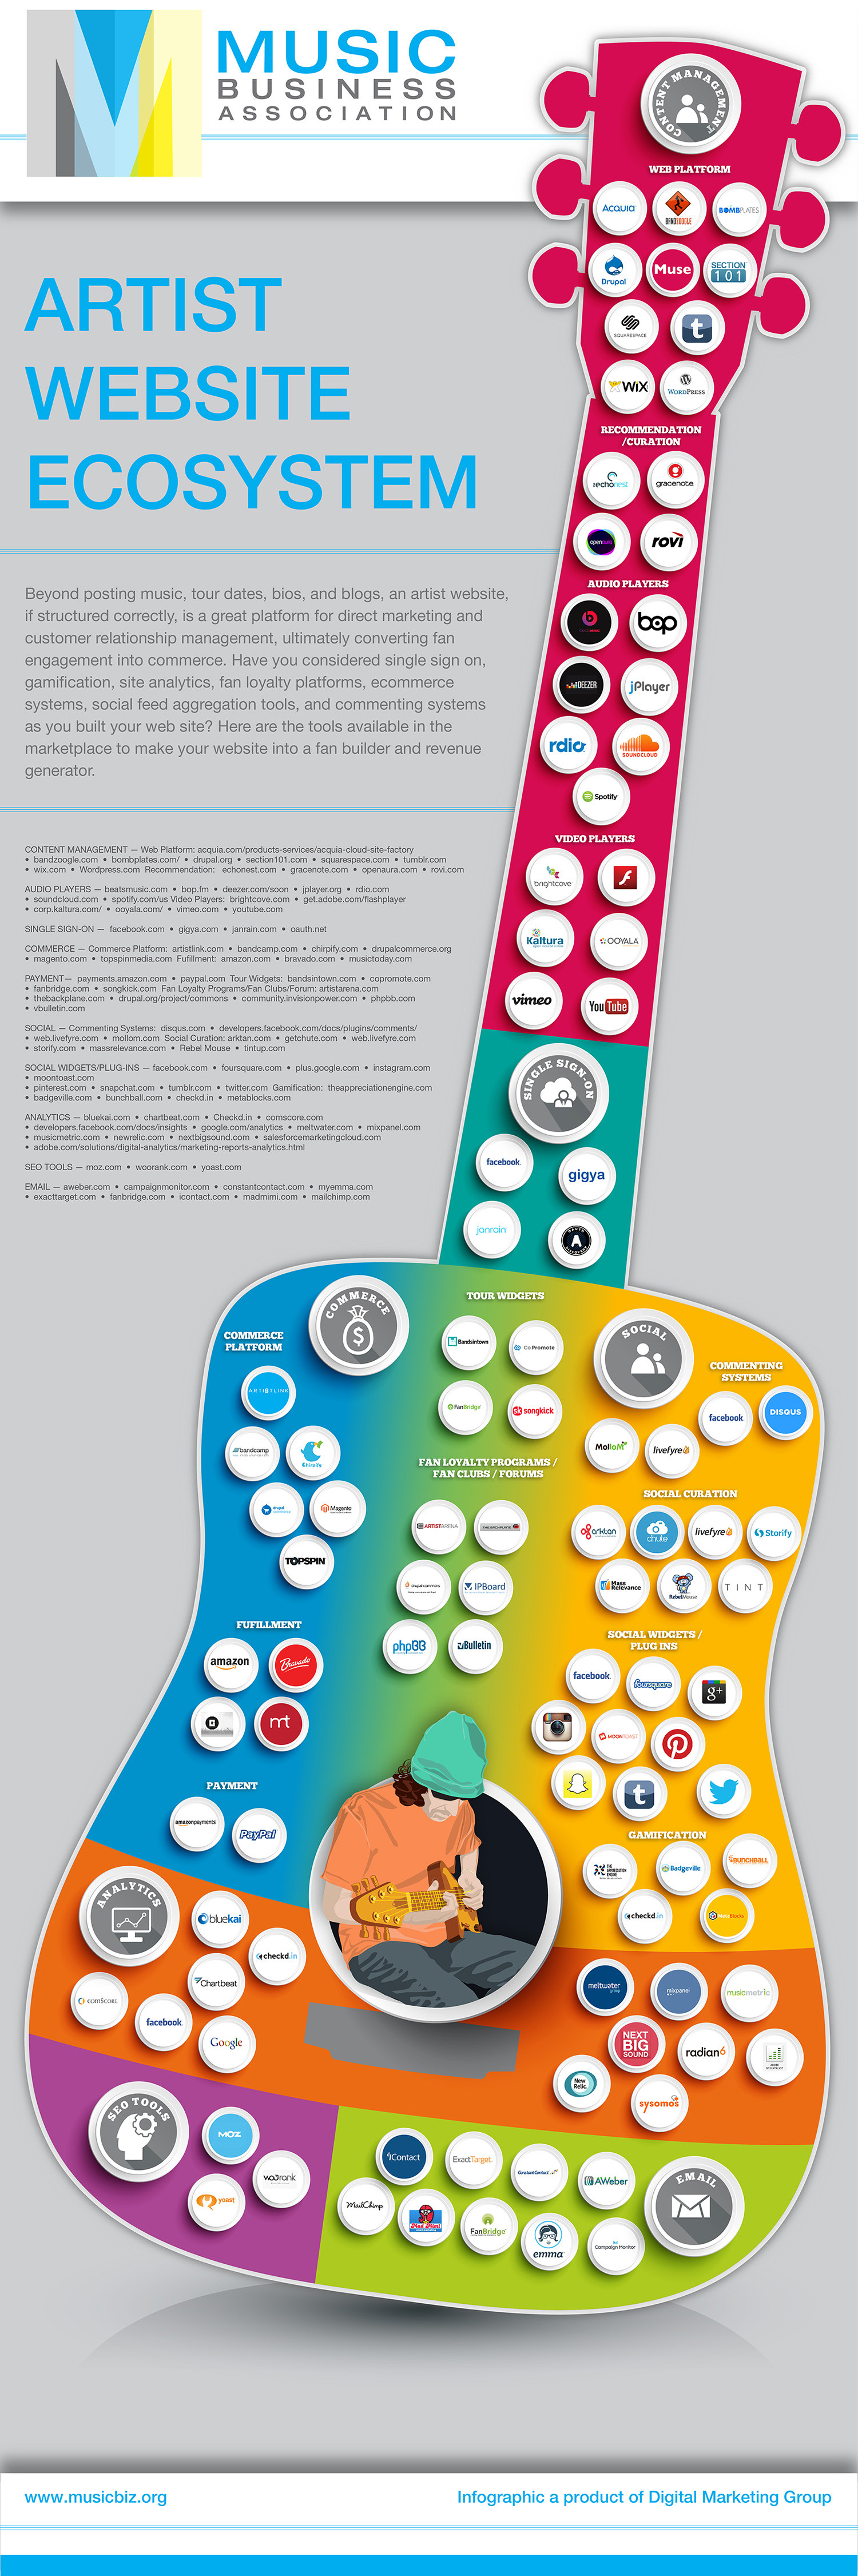 Artist Website Ecosystem Infographic